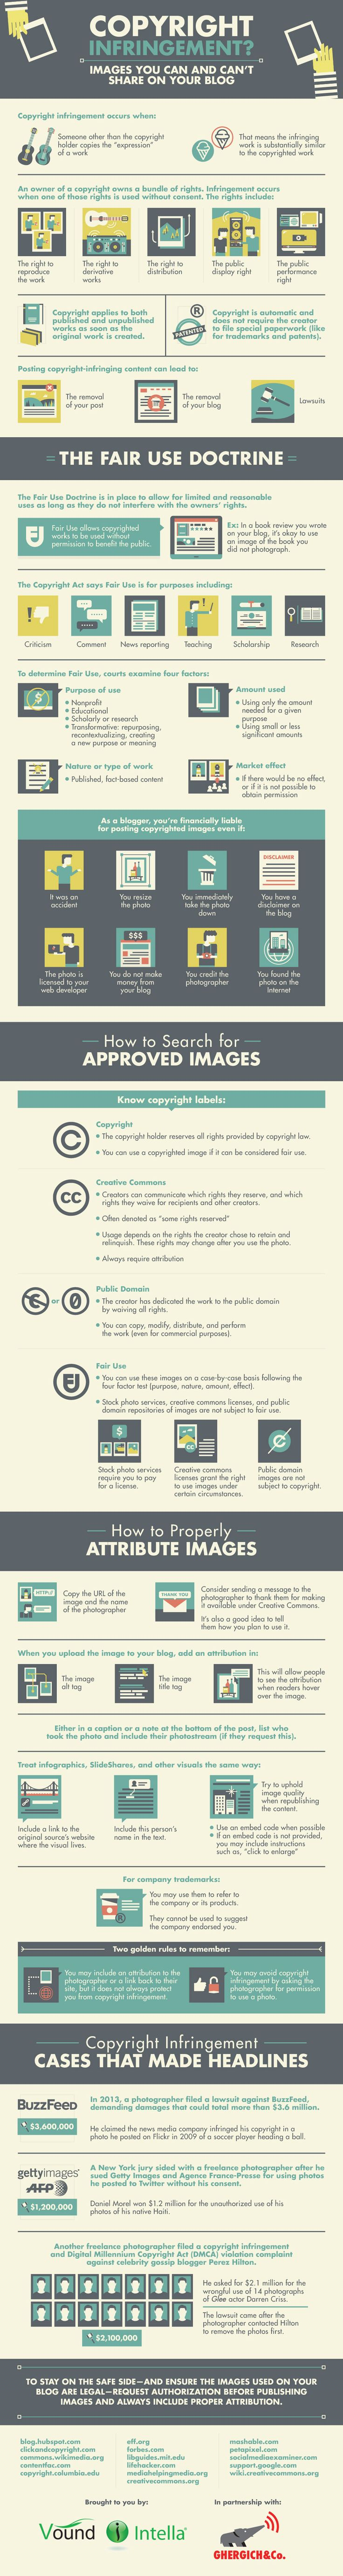 Copyright Infringement: Images You Can and Can't Share on Your Blog [by Vound Software -- via #tipsographic]. More at tipsographic.com